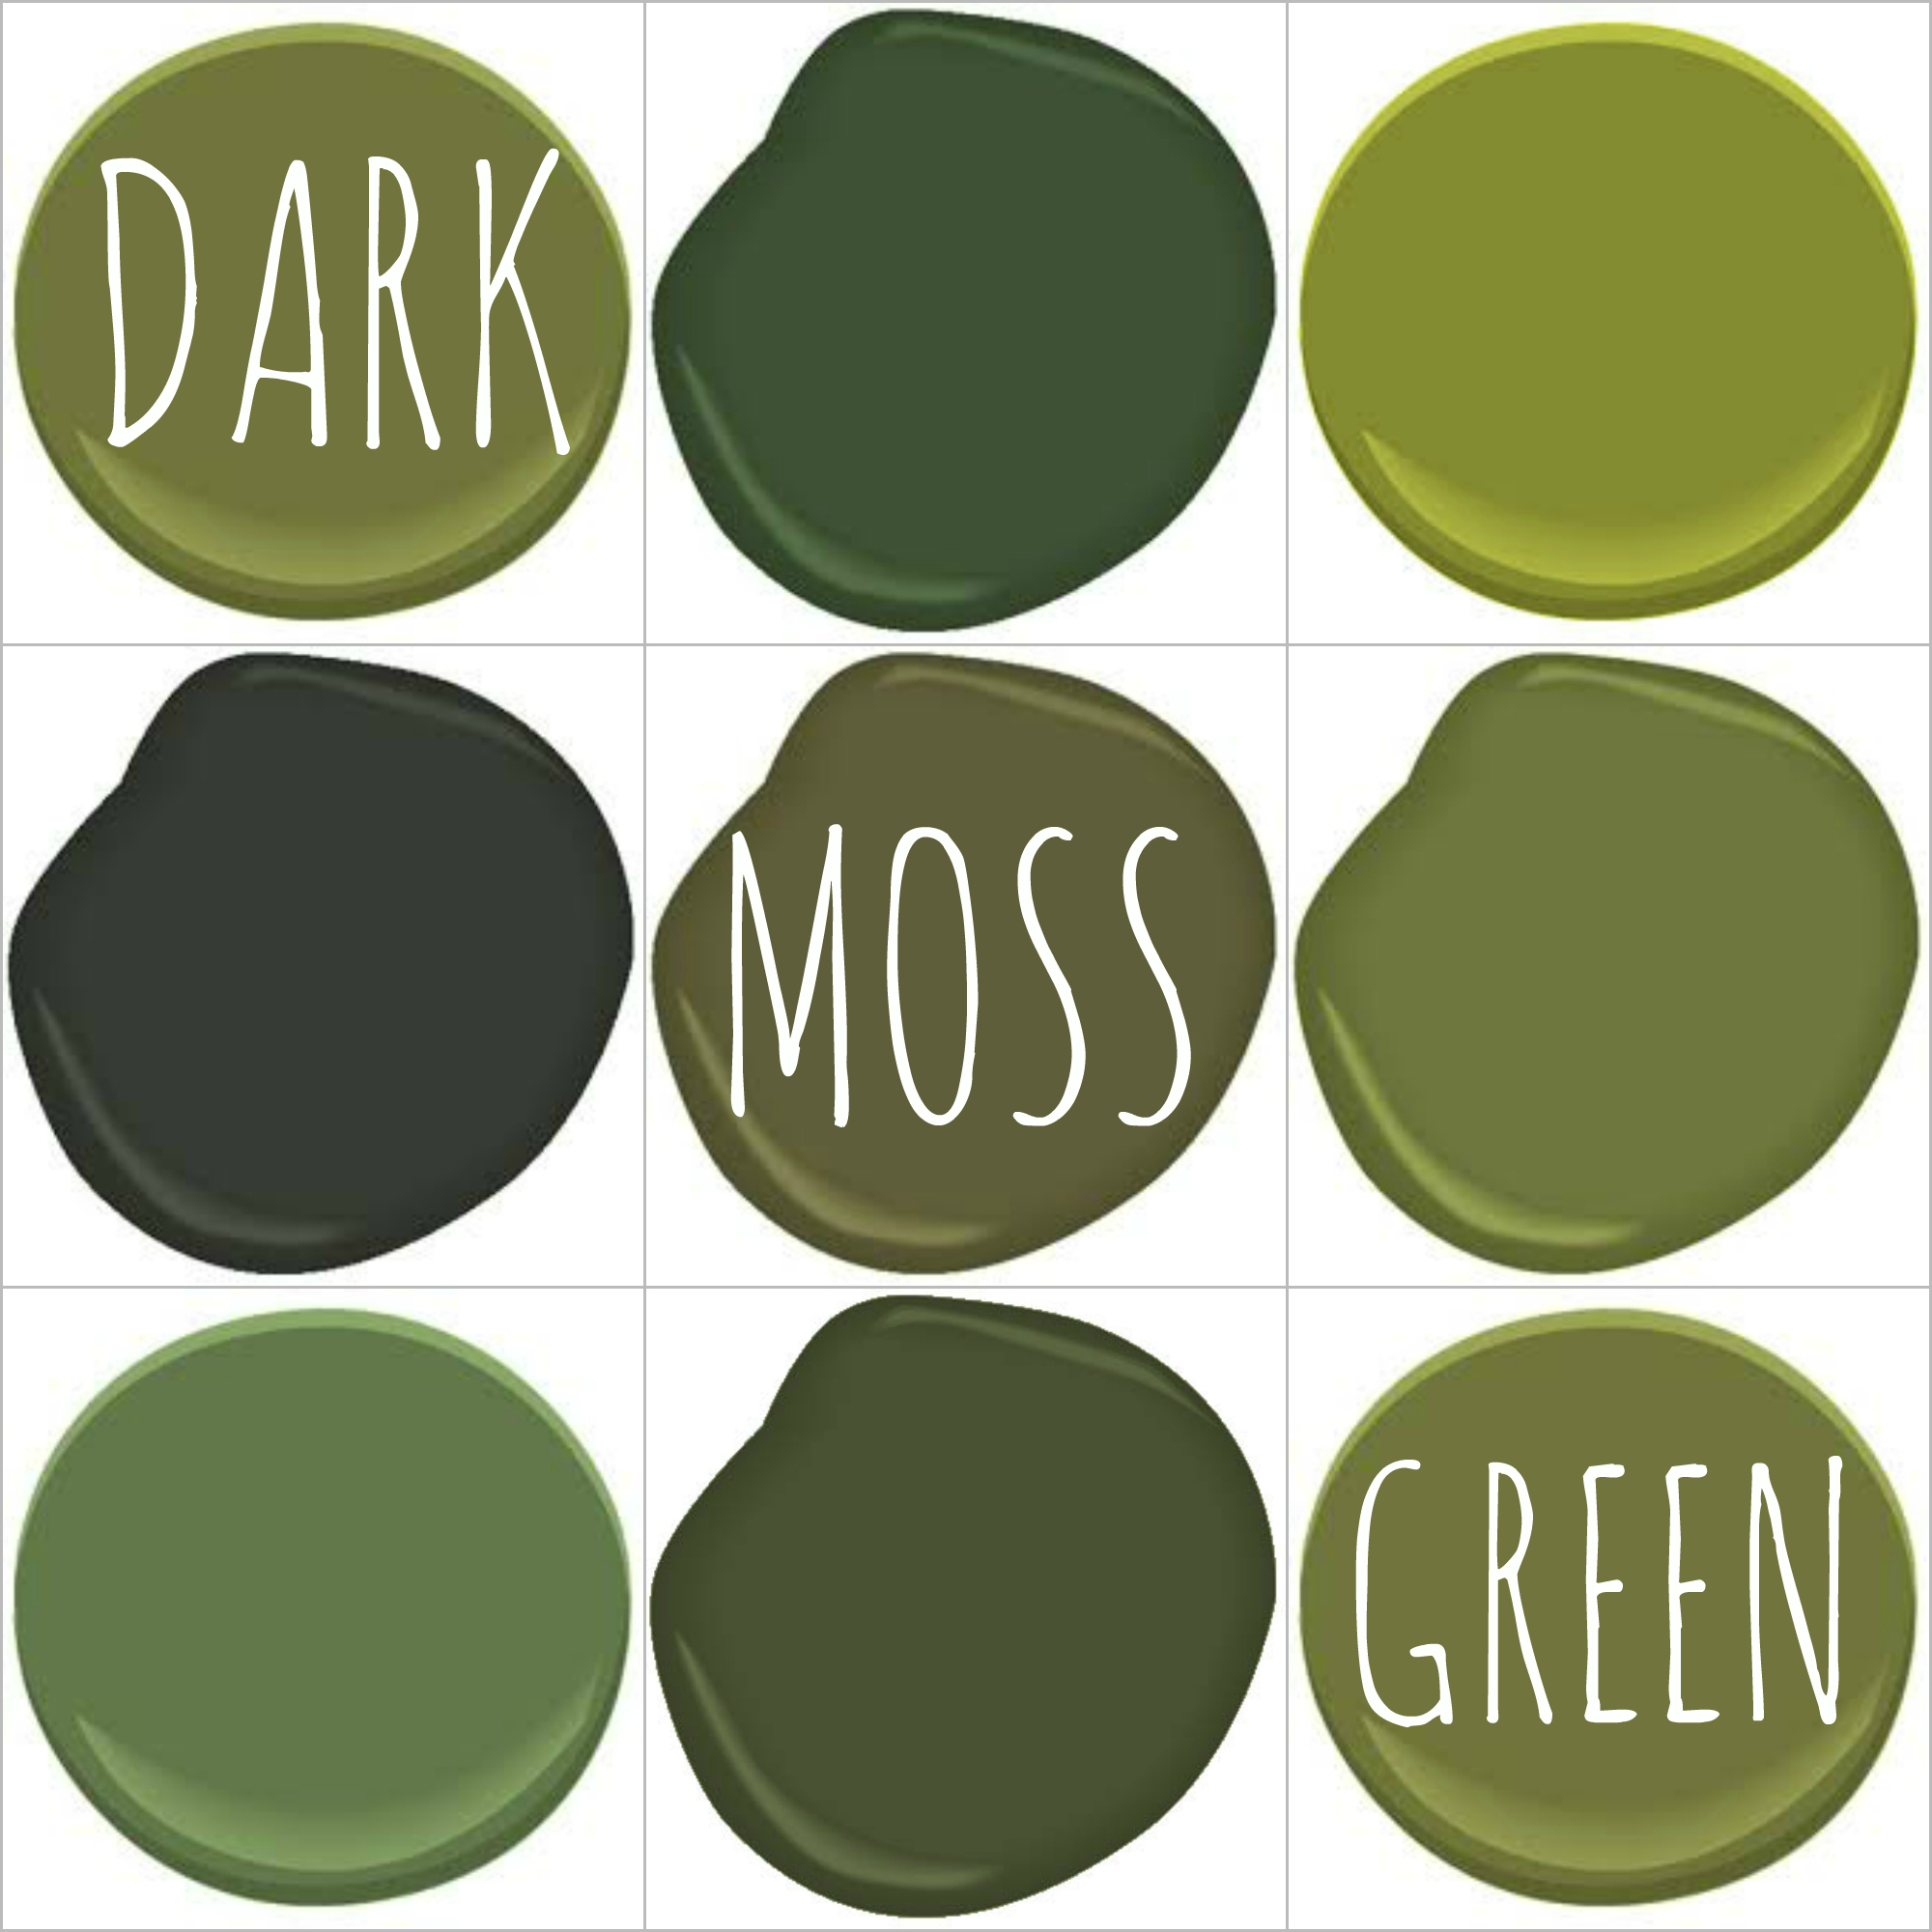 Color on trend deep mossy olive green Benjamin moore country green